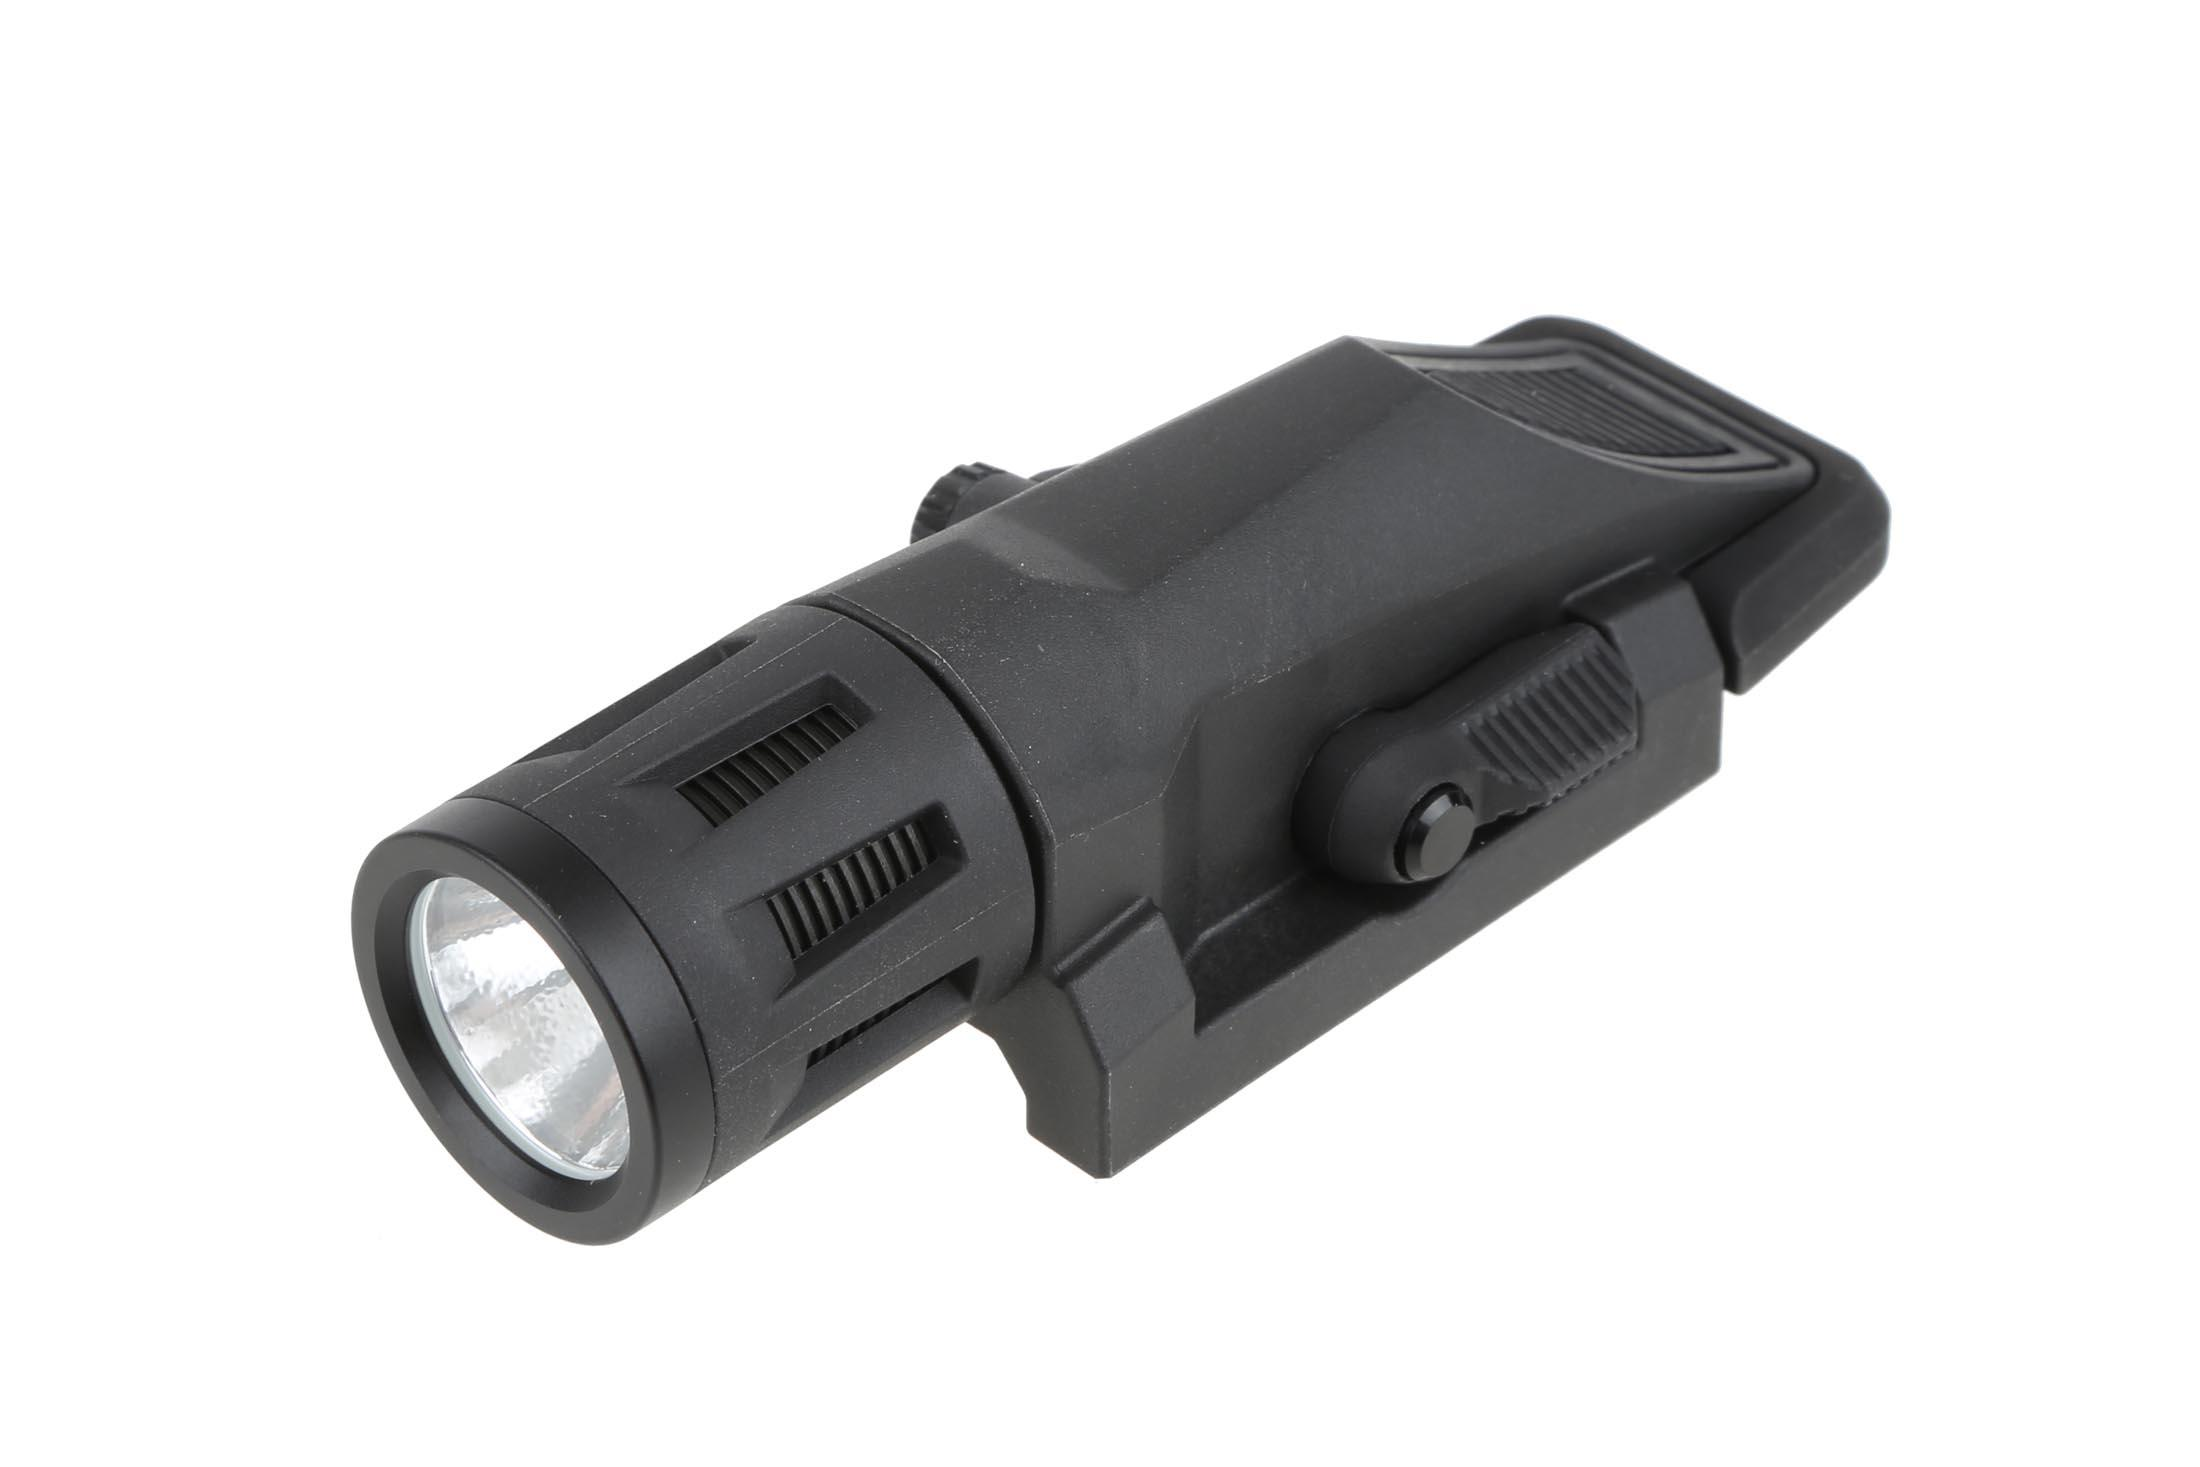 Inforce WML IR Weapon Mounted Light Gen 2 - 400 Lumens LED - Black